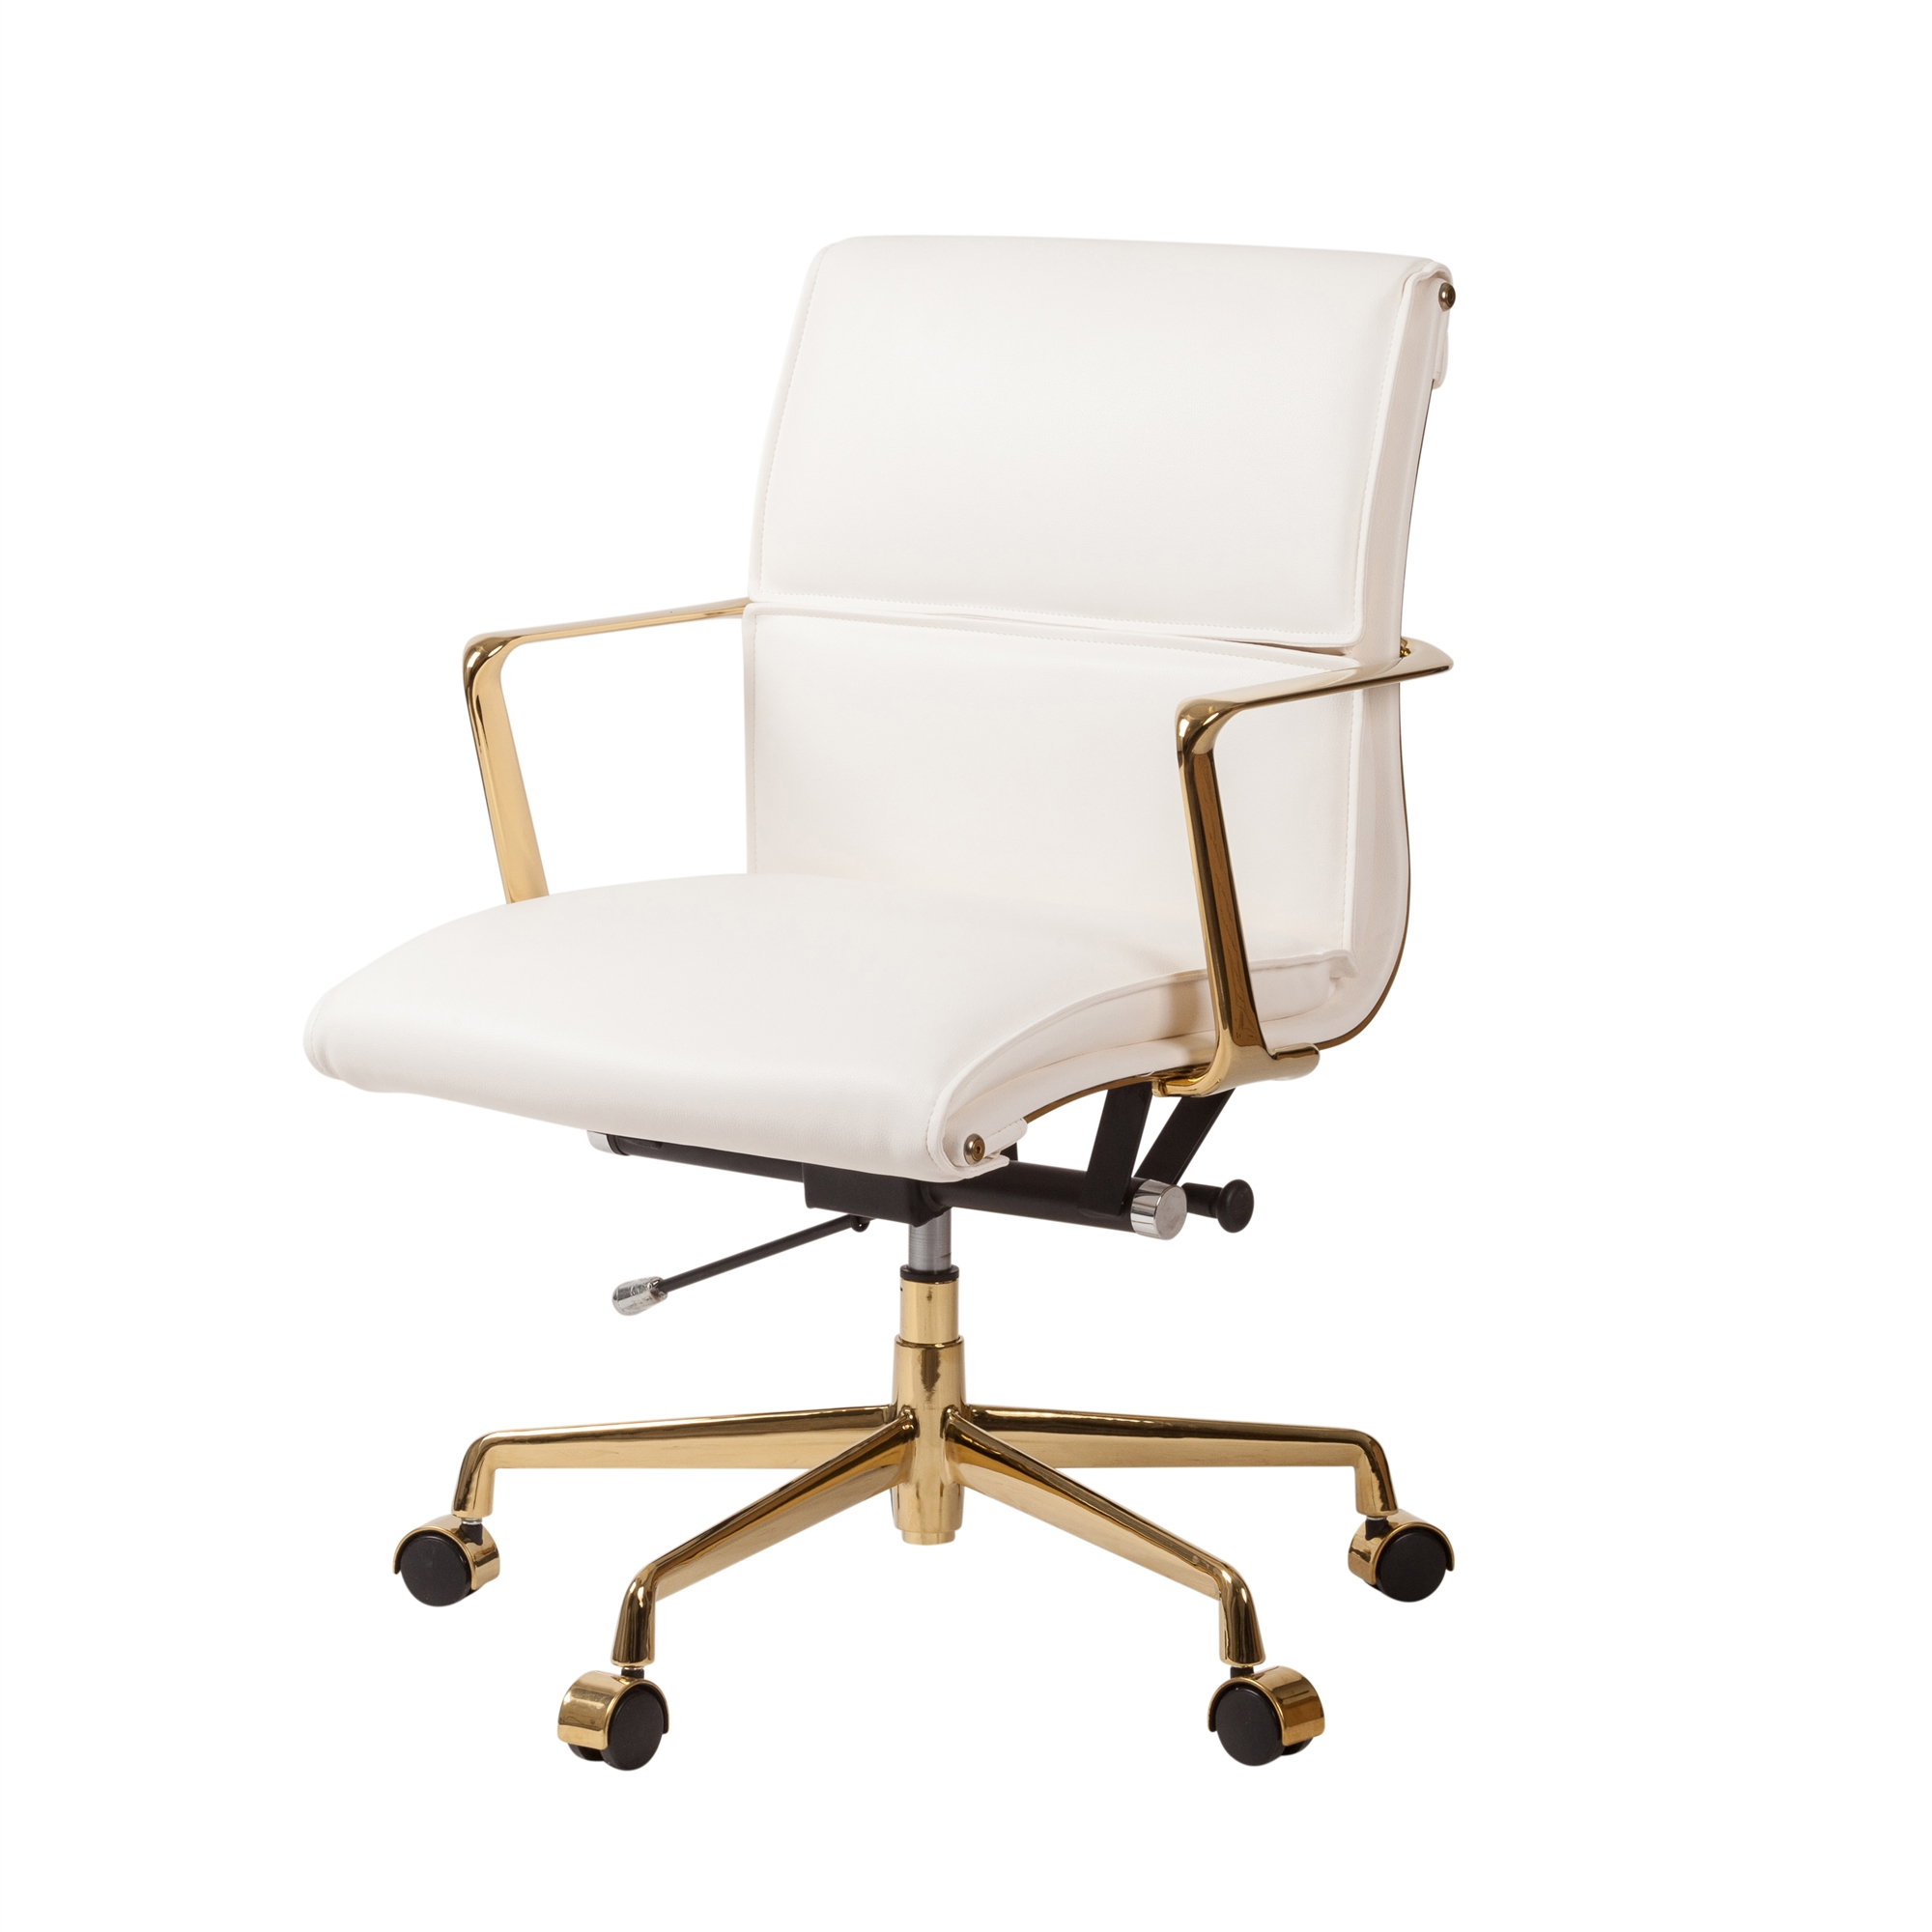 Sensational Cooper Mid Century Modern Office Chair With Gold Base White Leather Pabps2019 Chair Design Images Pabps2019Com